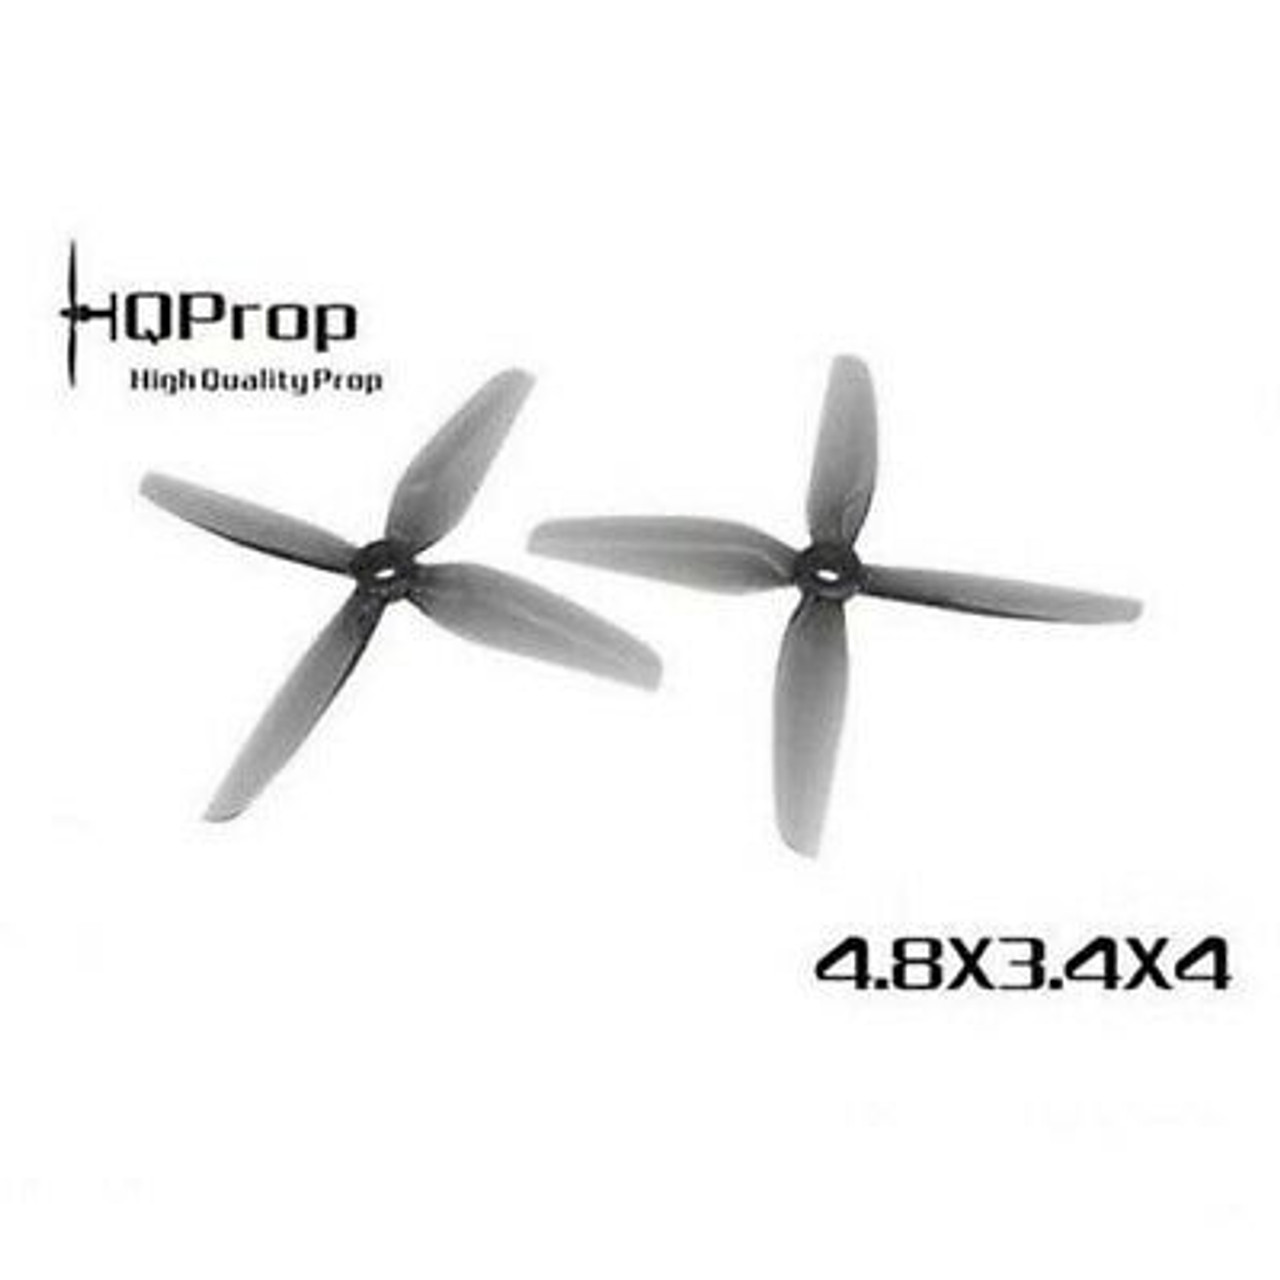 HQ Durable Prop  4.8X3.4X4 Grey (2CW+2CCW)-Poly Carbonate